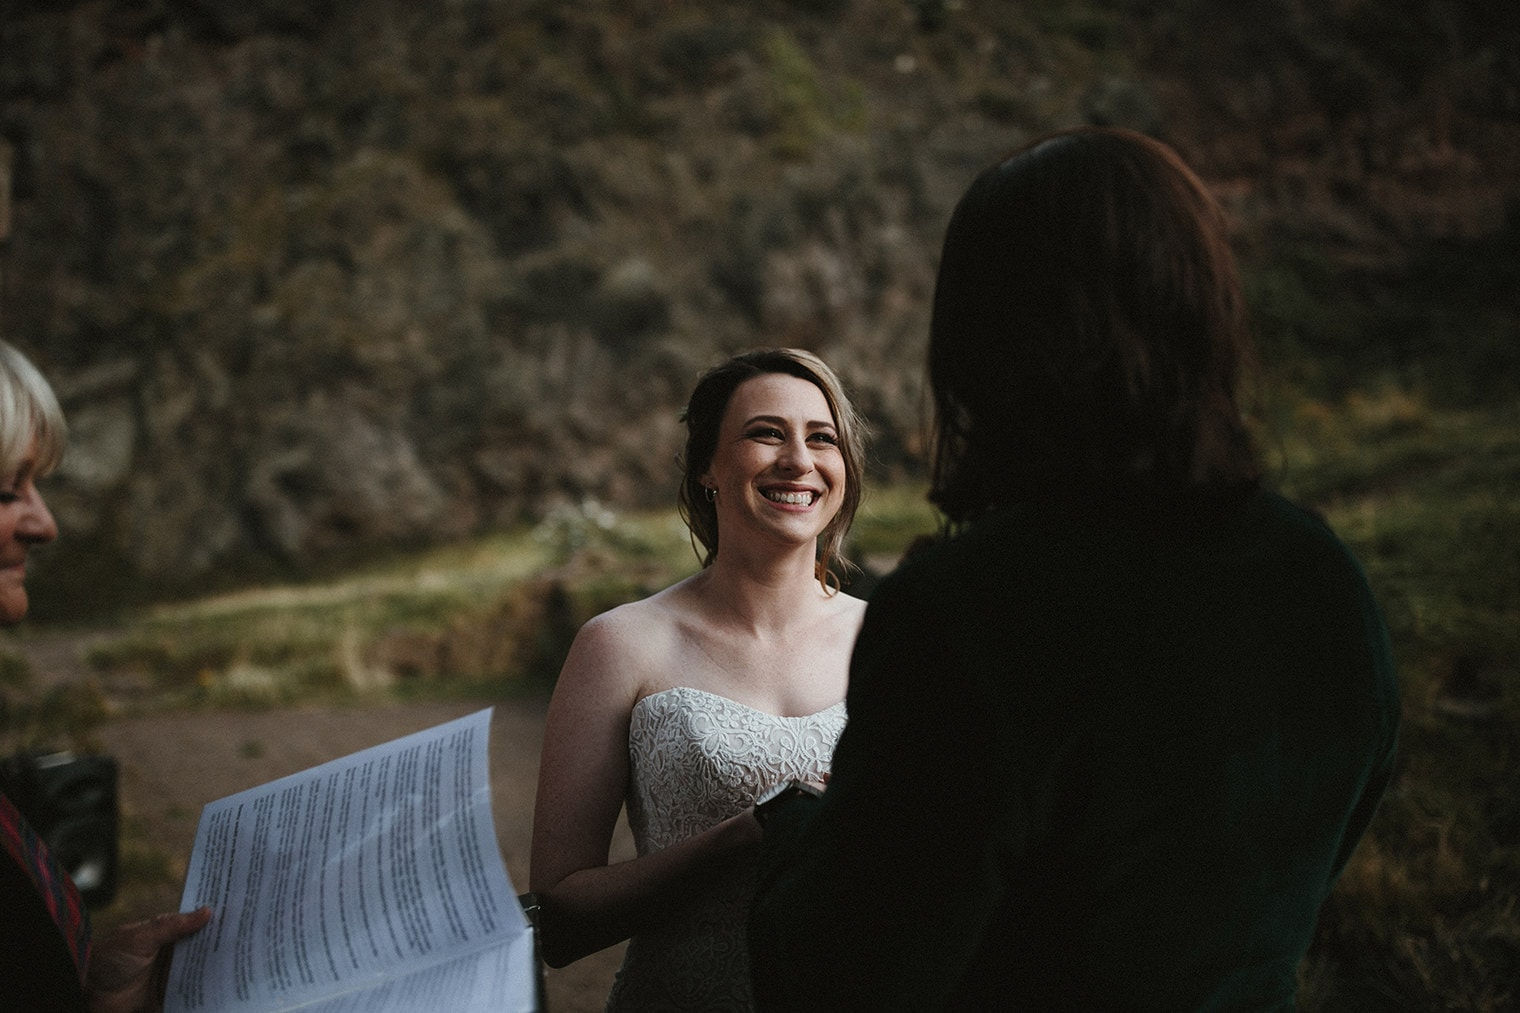 Bride smiling at groom during her wedding ceremony at St. Anthony's chapel in edinburgh